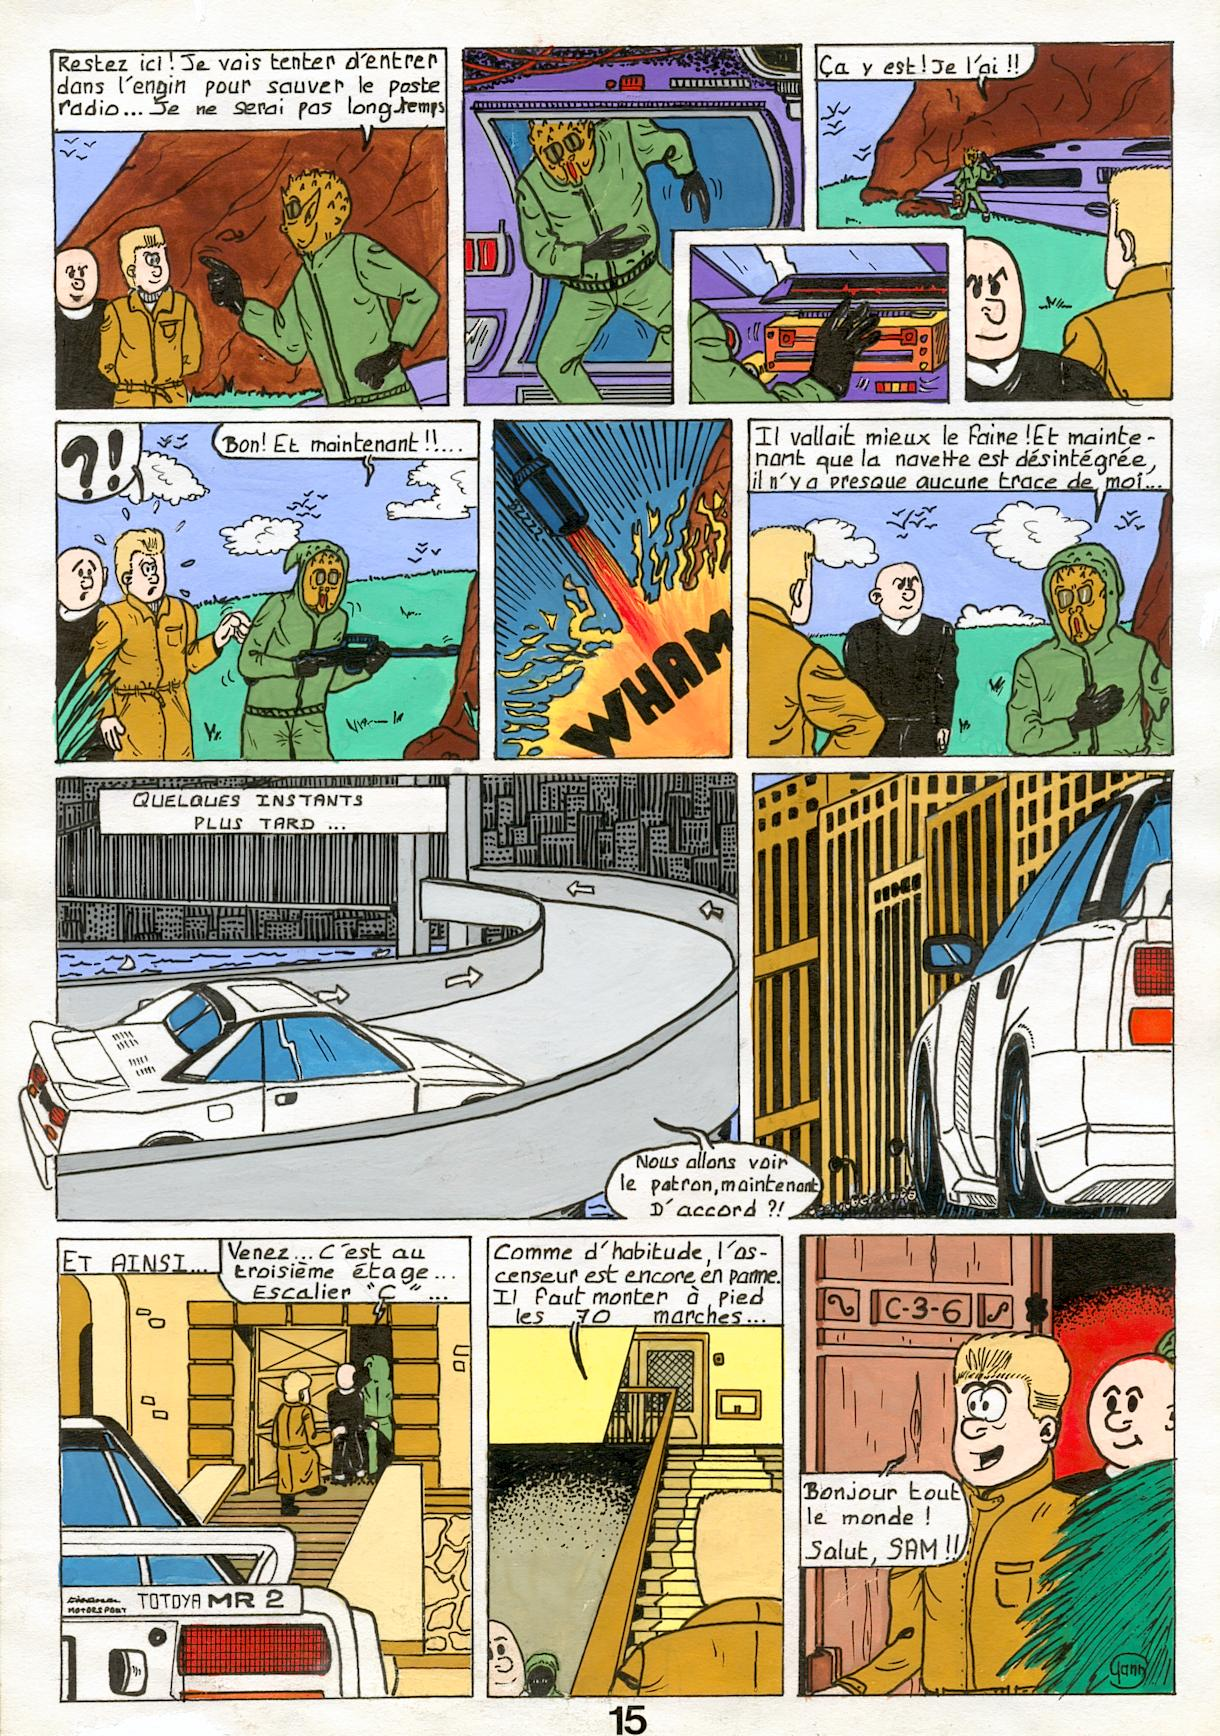 BD 8 page 15